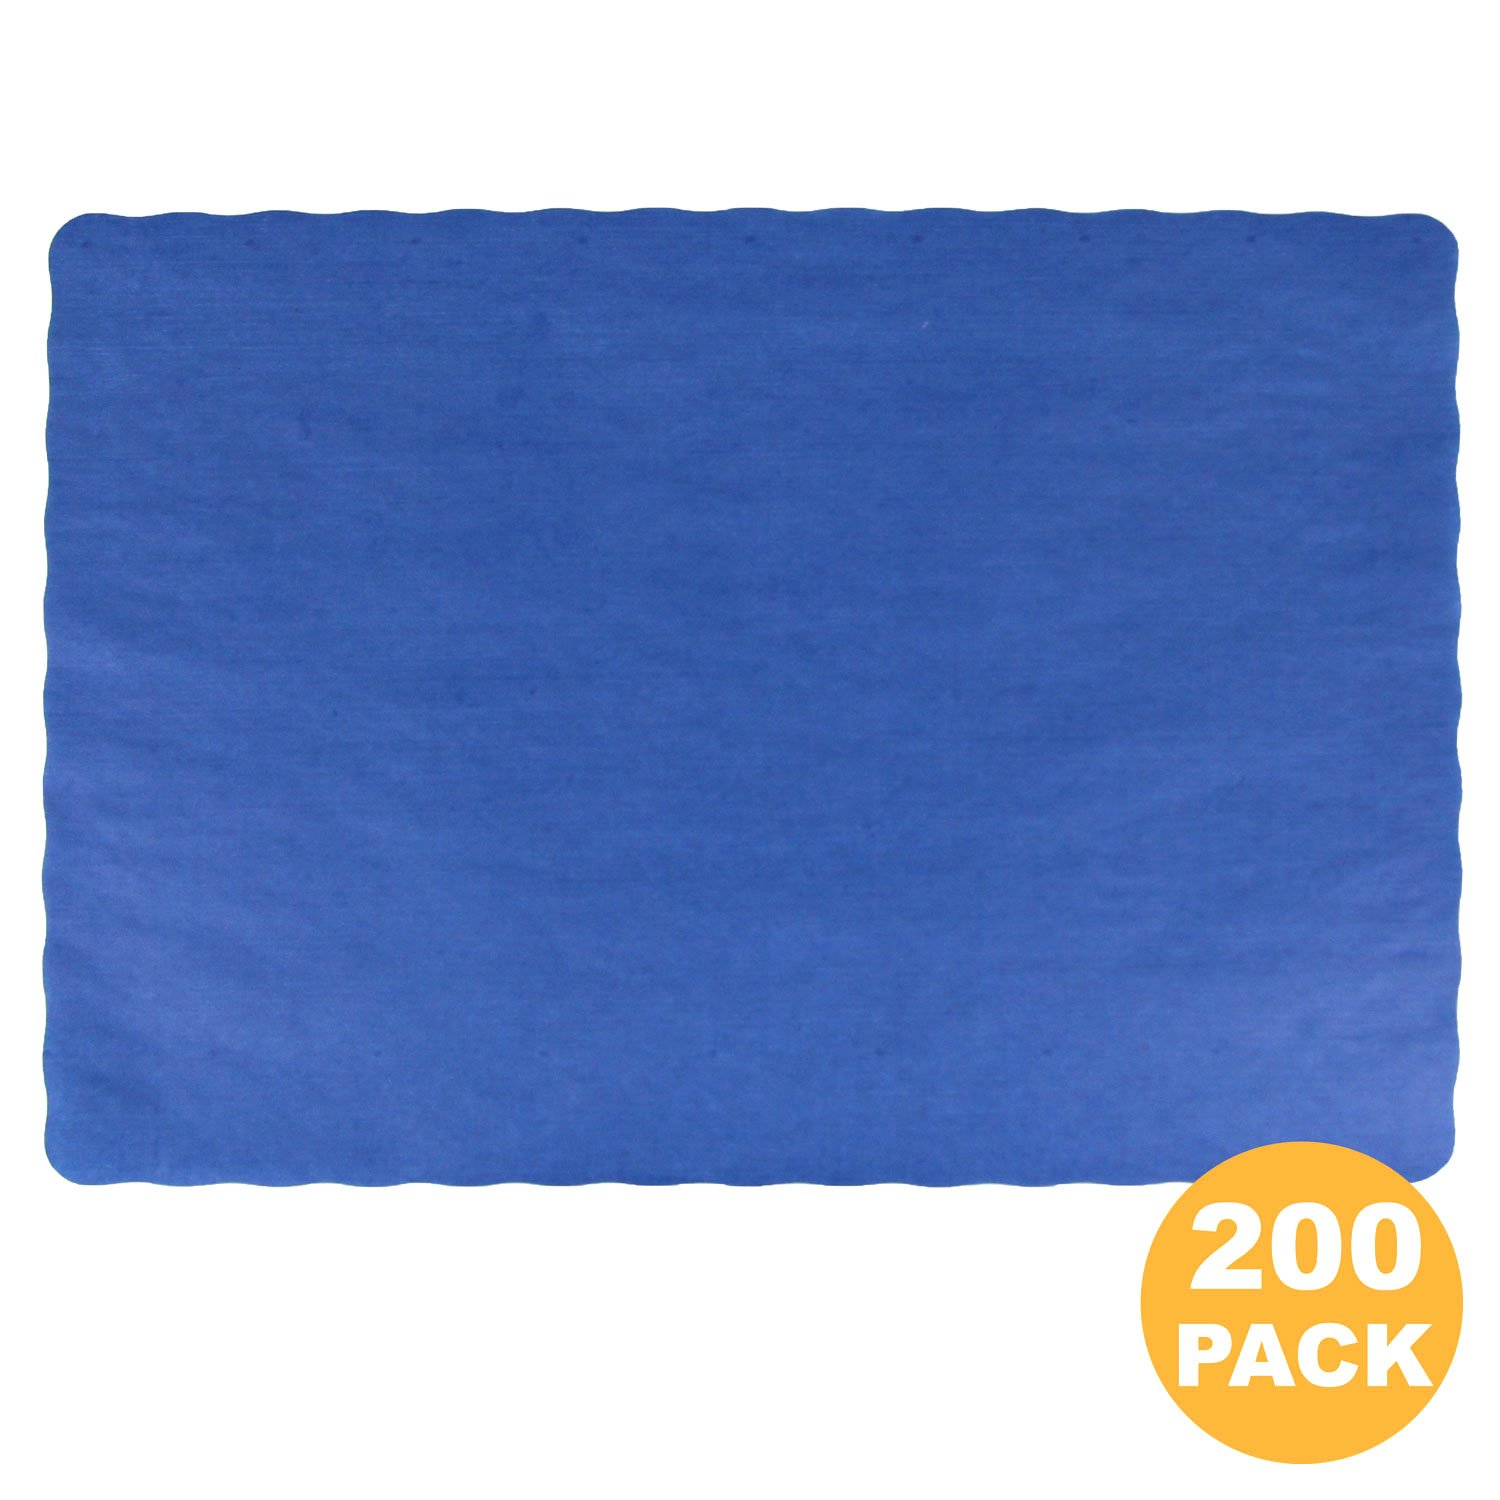 Disposable 14 x 10'' Plain Navy Blue Paper Placemat with Decorative Wavy Scalloped Edge [200 Pack]